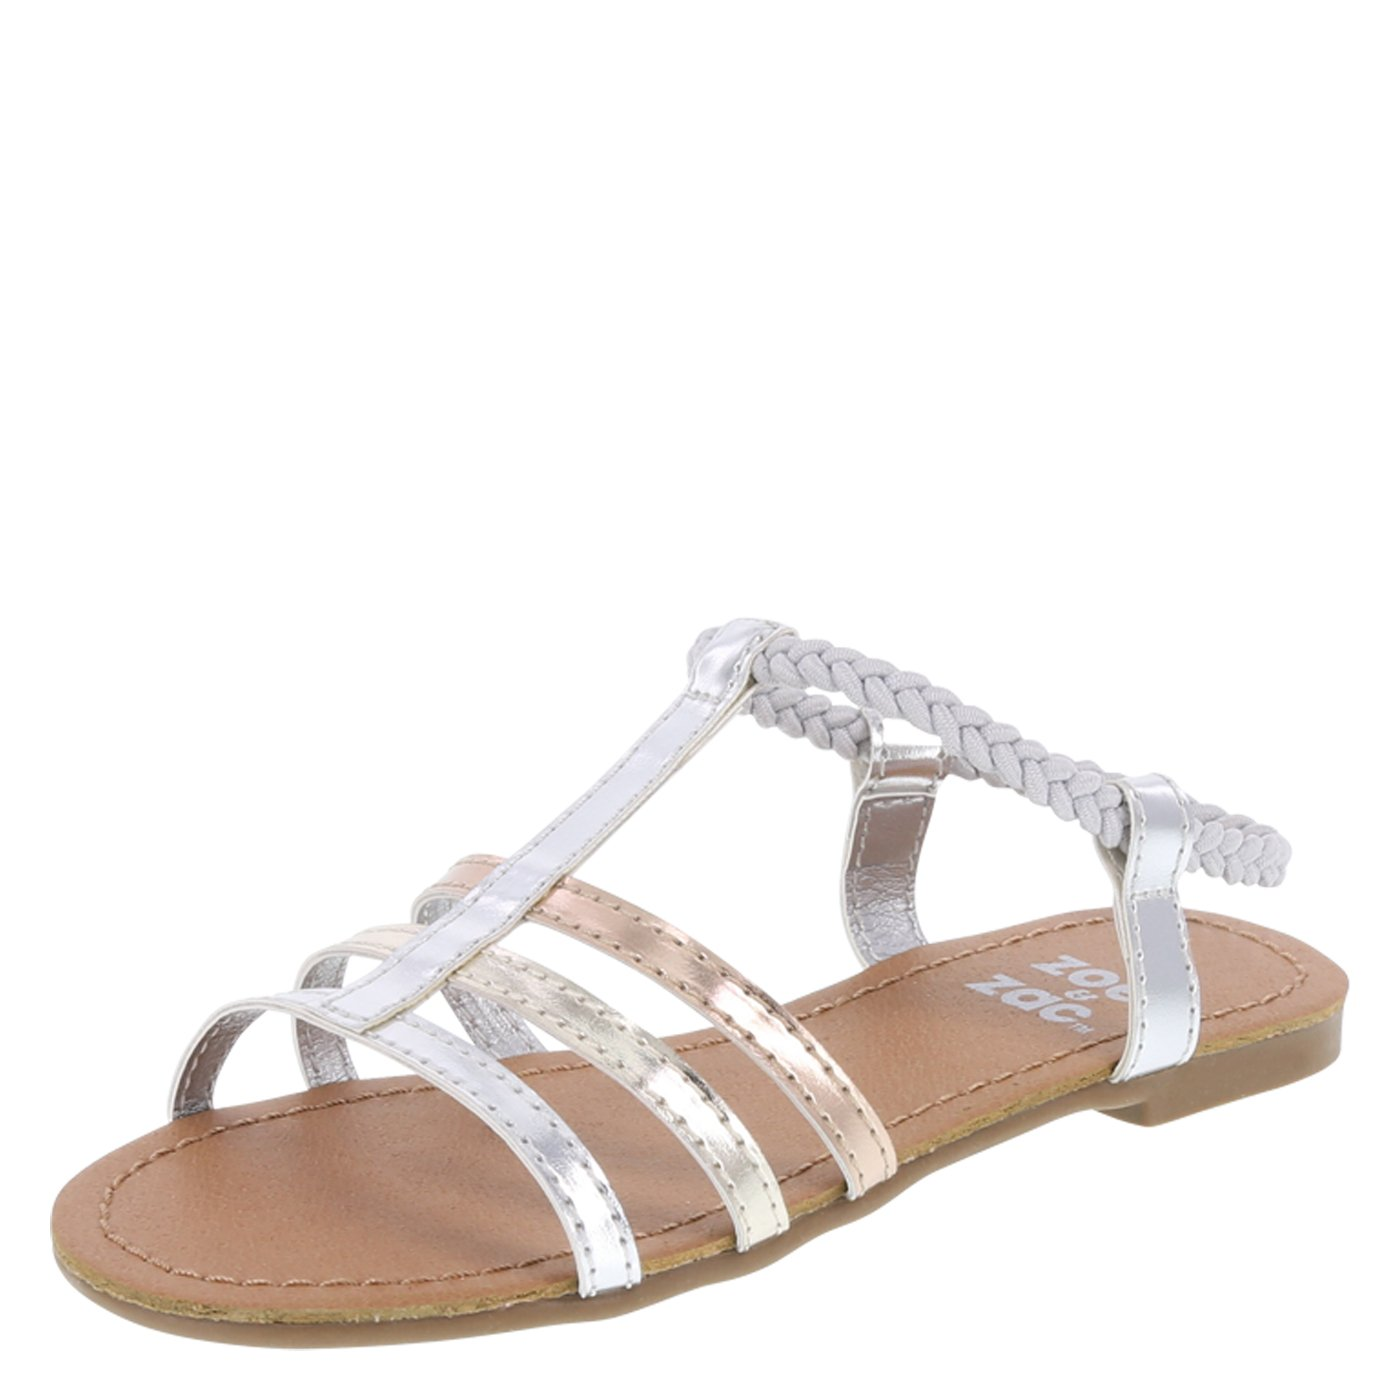 Zoe and Zac Girls' Bellah Sandal 078423-Parent